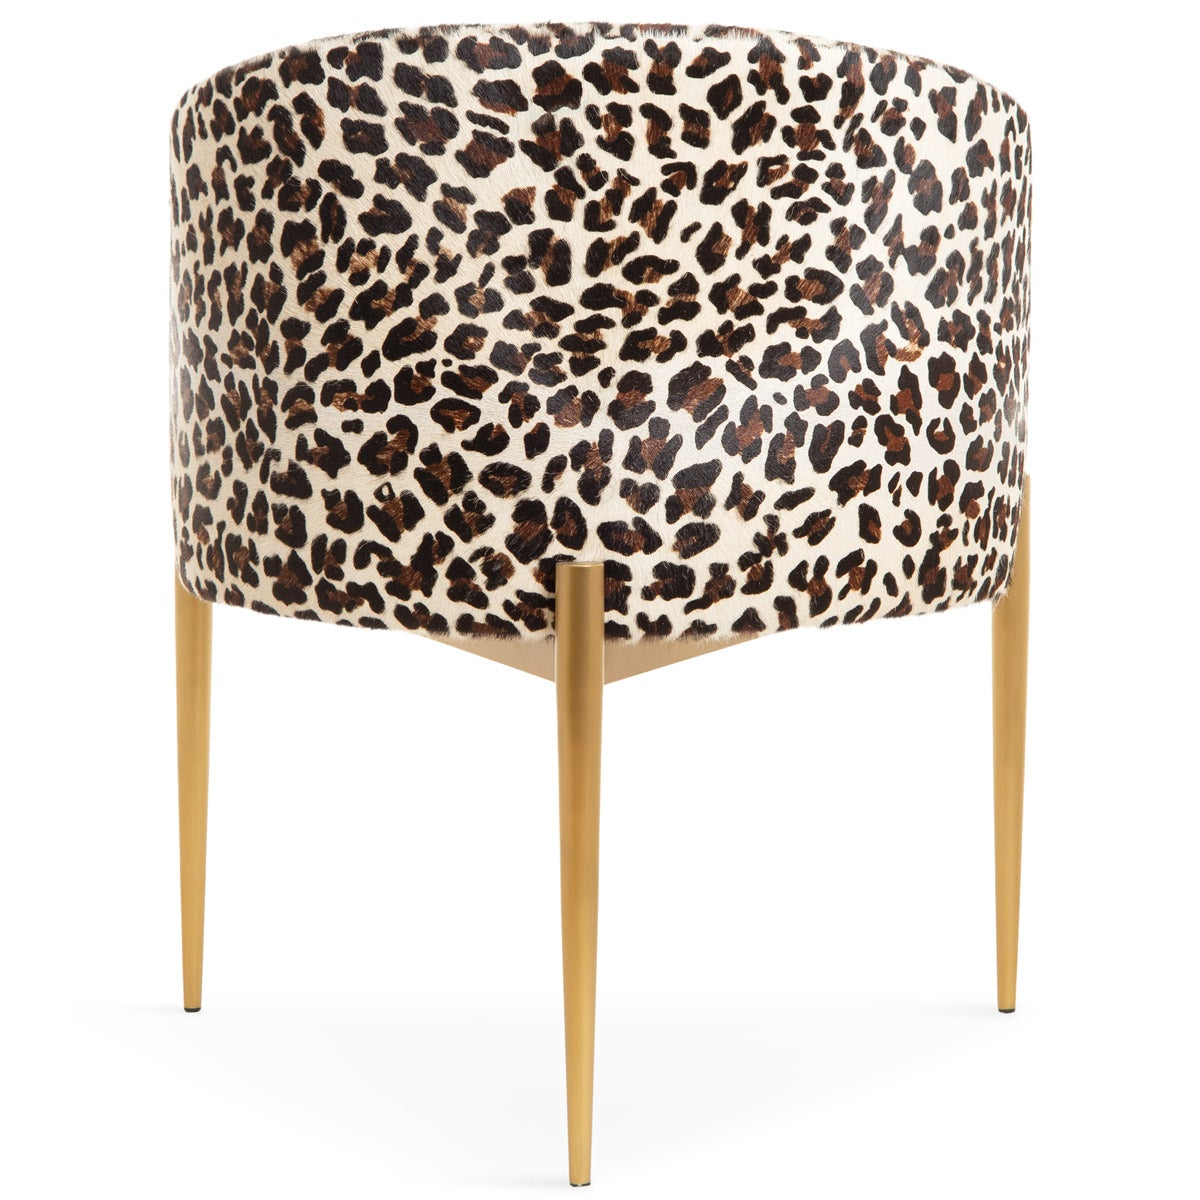 Art Deco Dining Chair in Leopard Print Cowhide - ModShop1.com